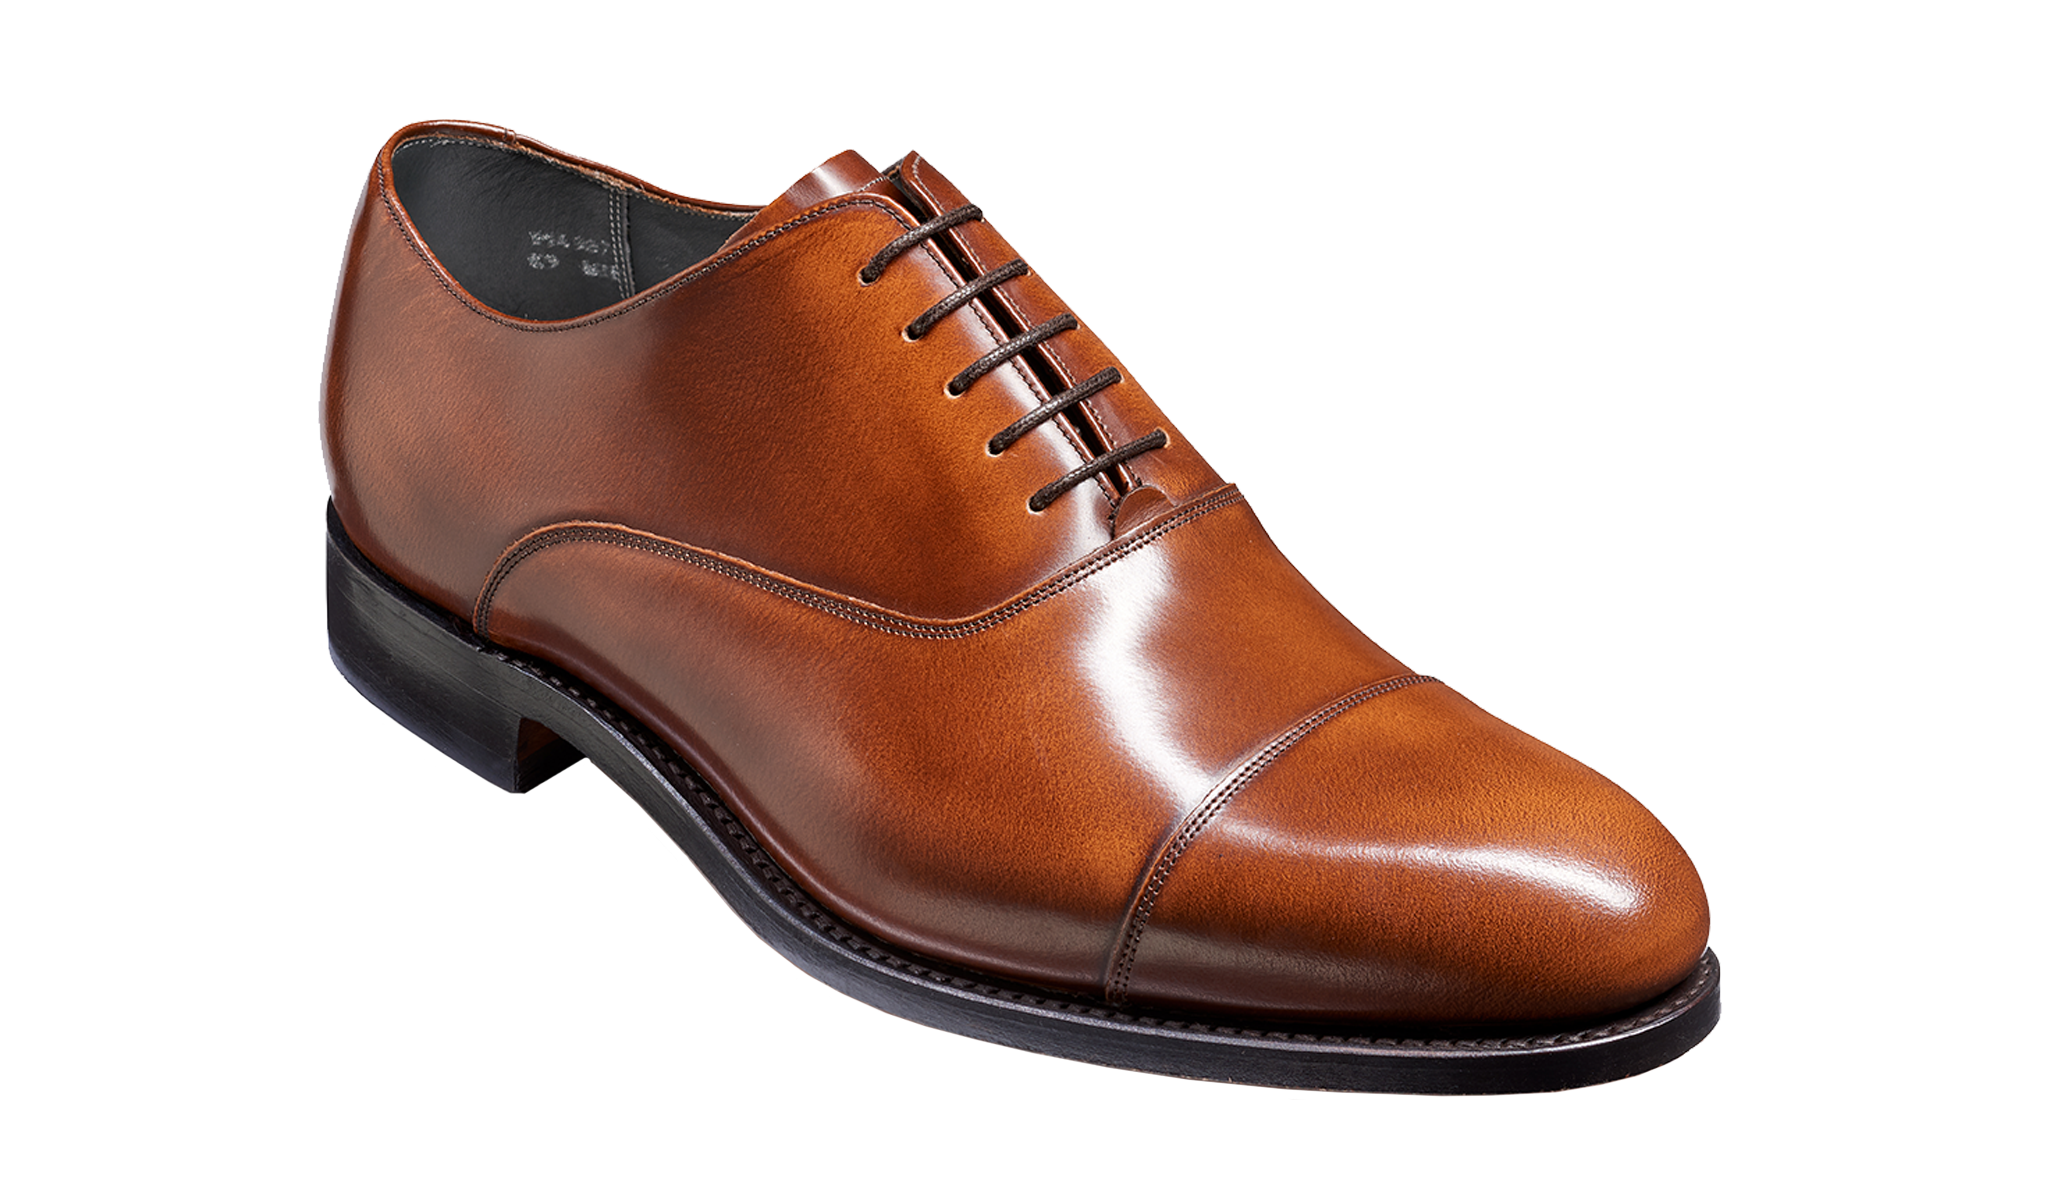 Winsford - Men's Brown Leather Oxford Shoes From Barker